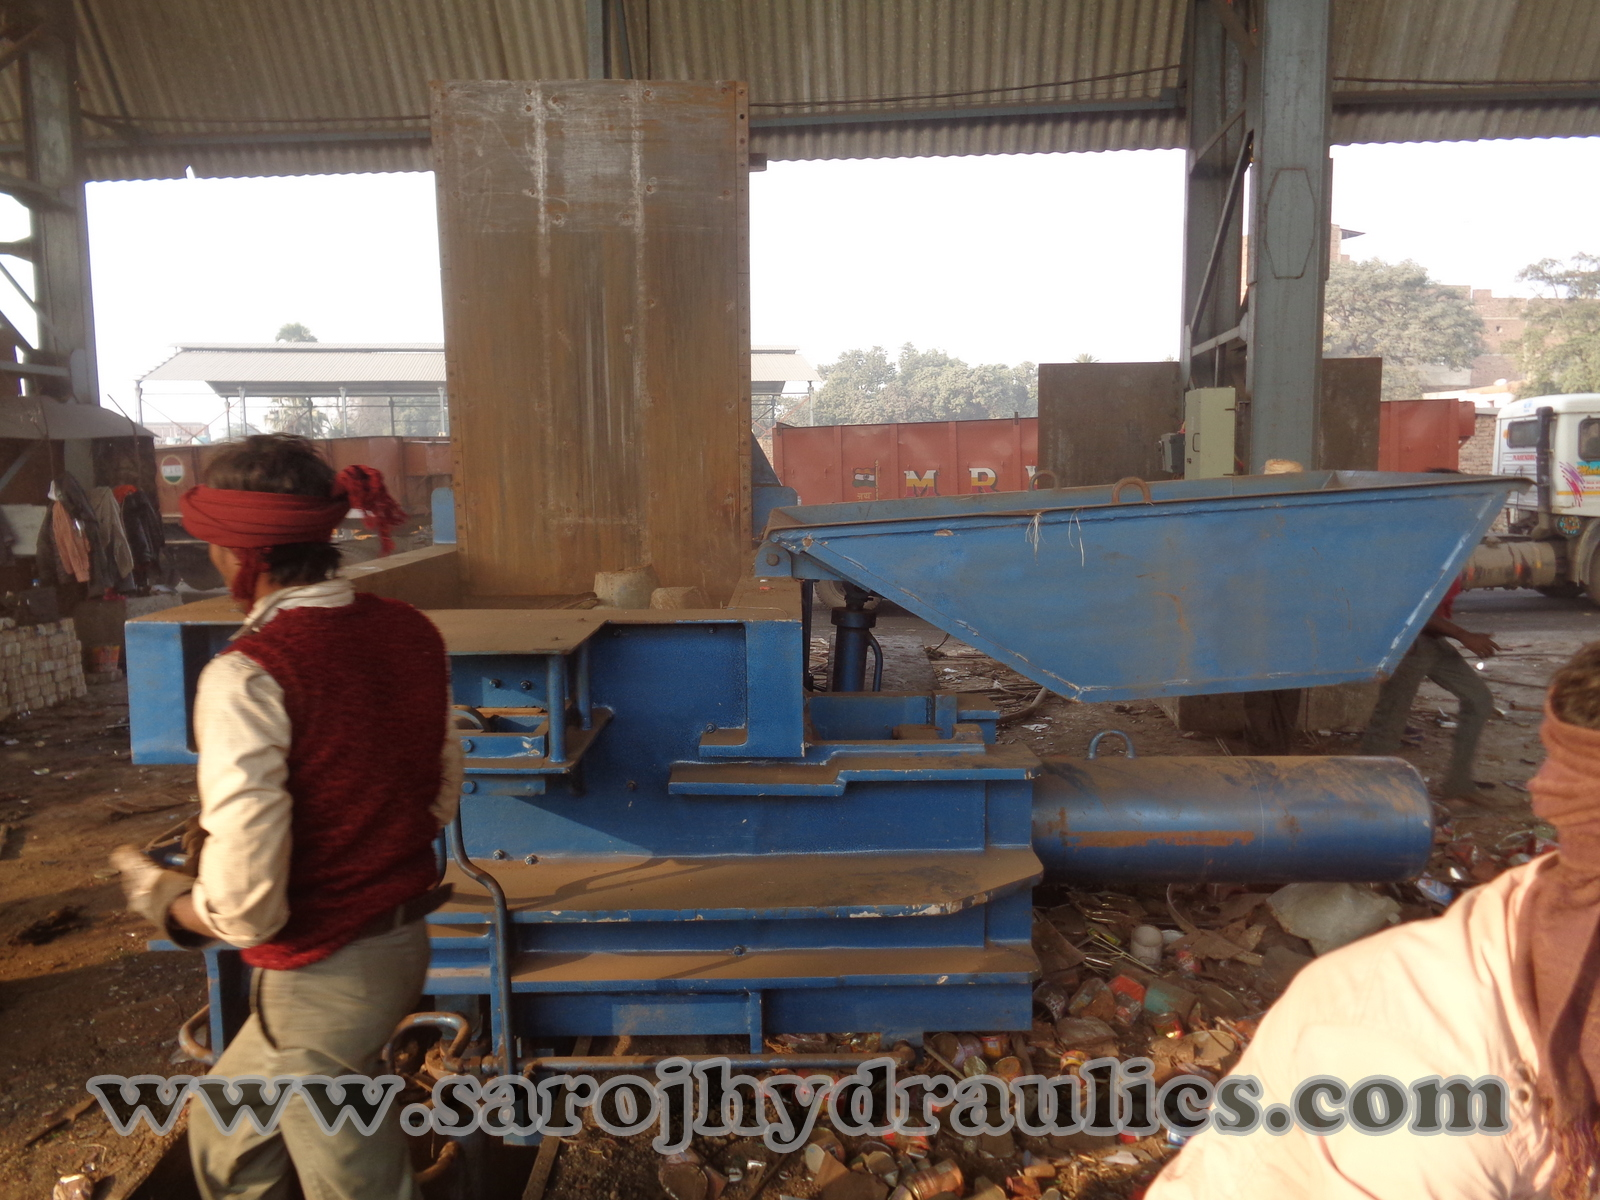 metal baling machine manufacturer of hydraulic waste baling/baler/bale press/pressing machine(manual/automatic baling machine)in (INDIA,new delhi) with competitive price.